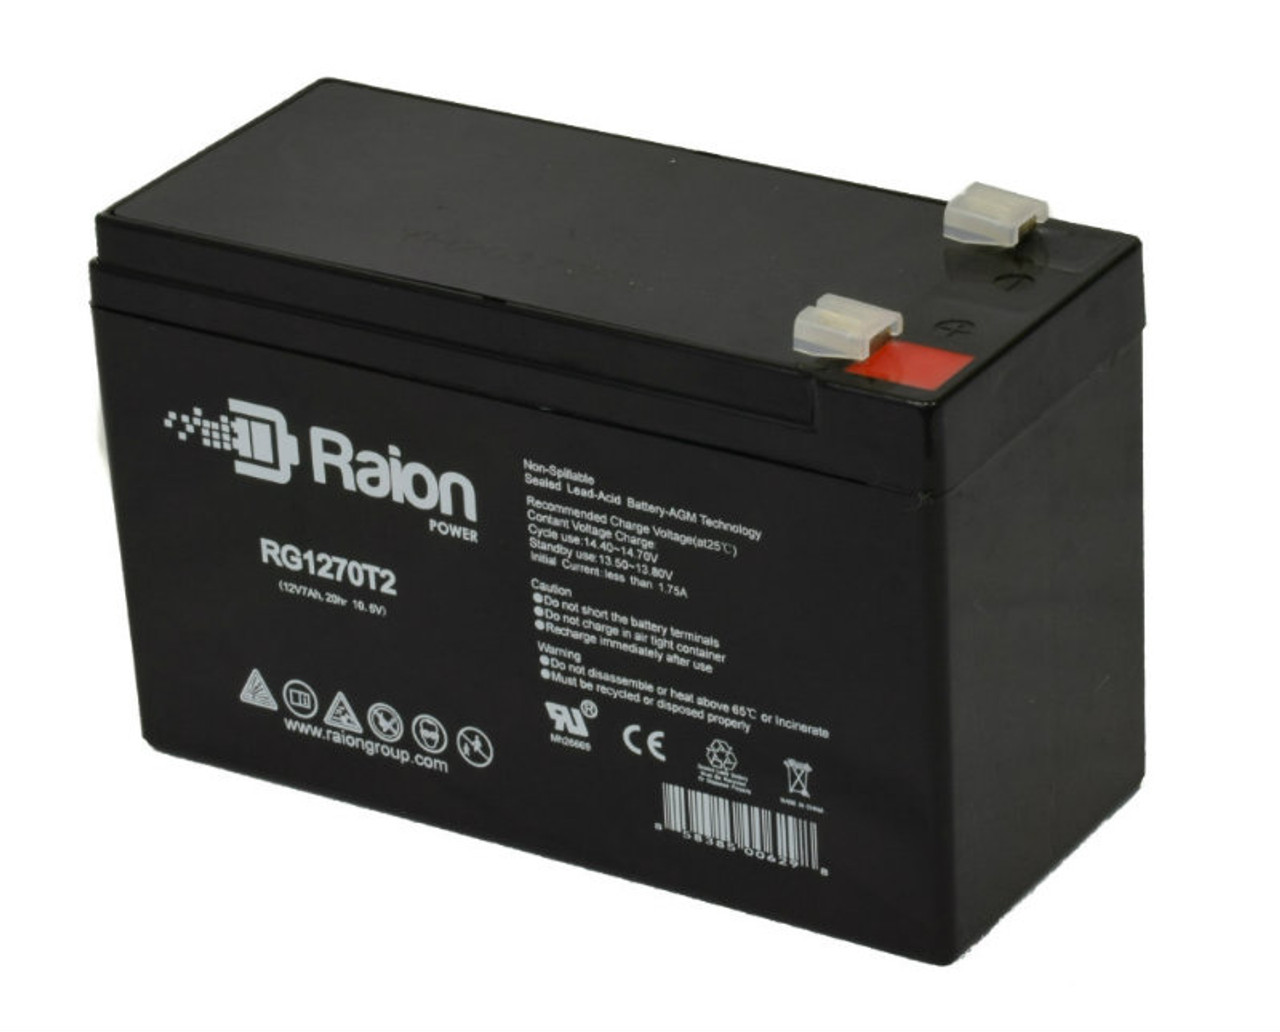 Raion Power RG1270T1 Replacement Battery for Leoch Battery DJW12-7.2